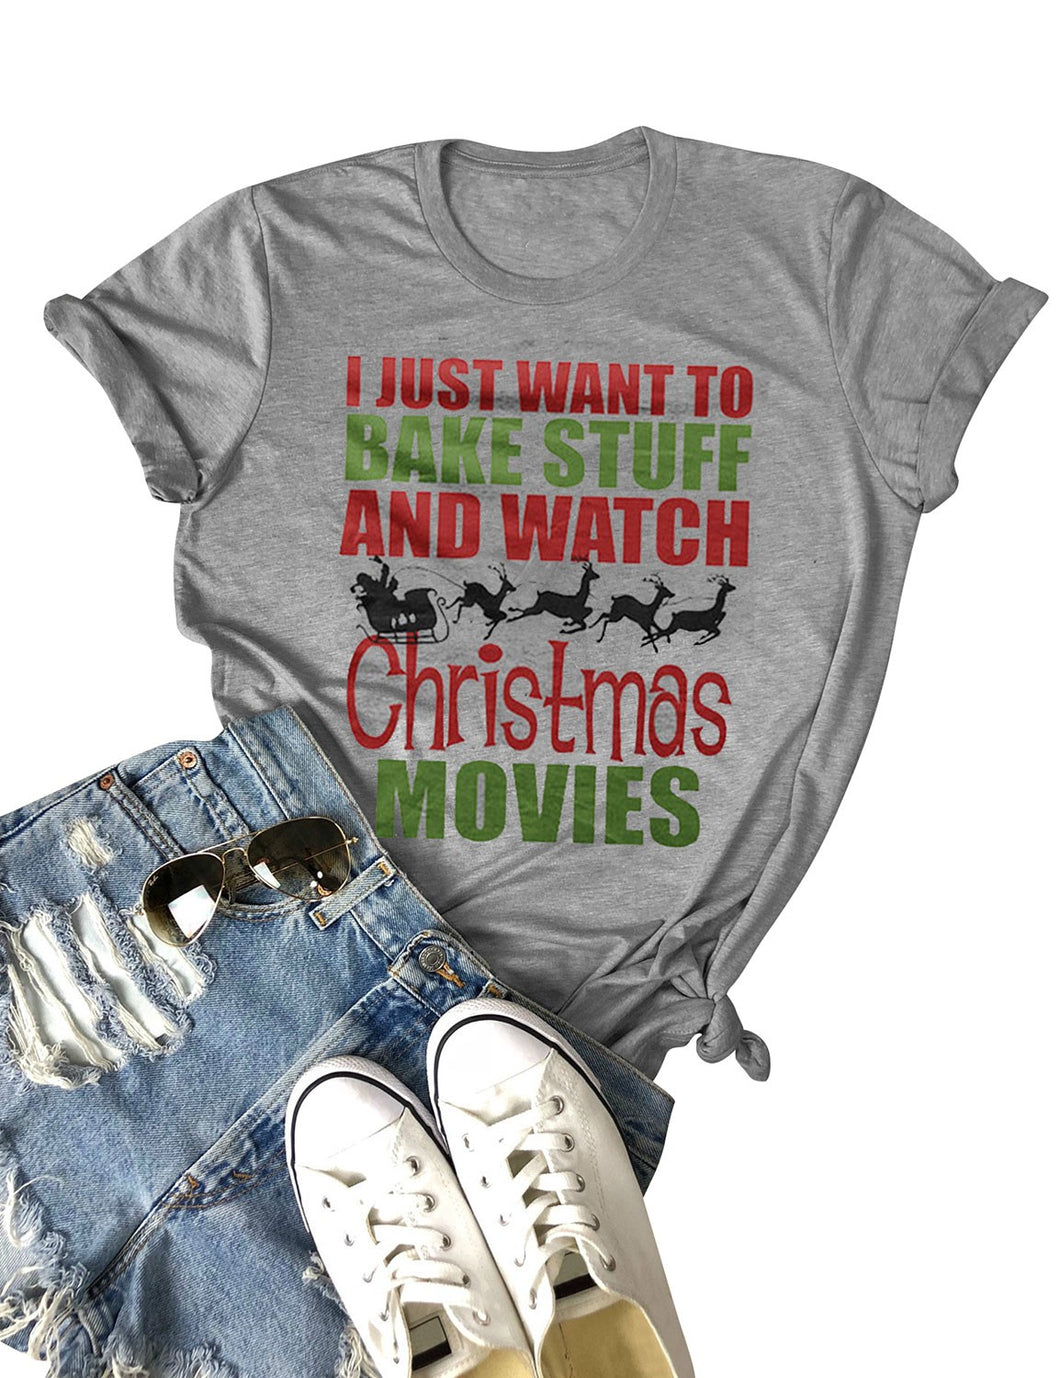 Women Bake Stuff And Watch Christmas Movies Letter Print Crew Neck Short Sleeves Solid Color Tops T-shirt